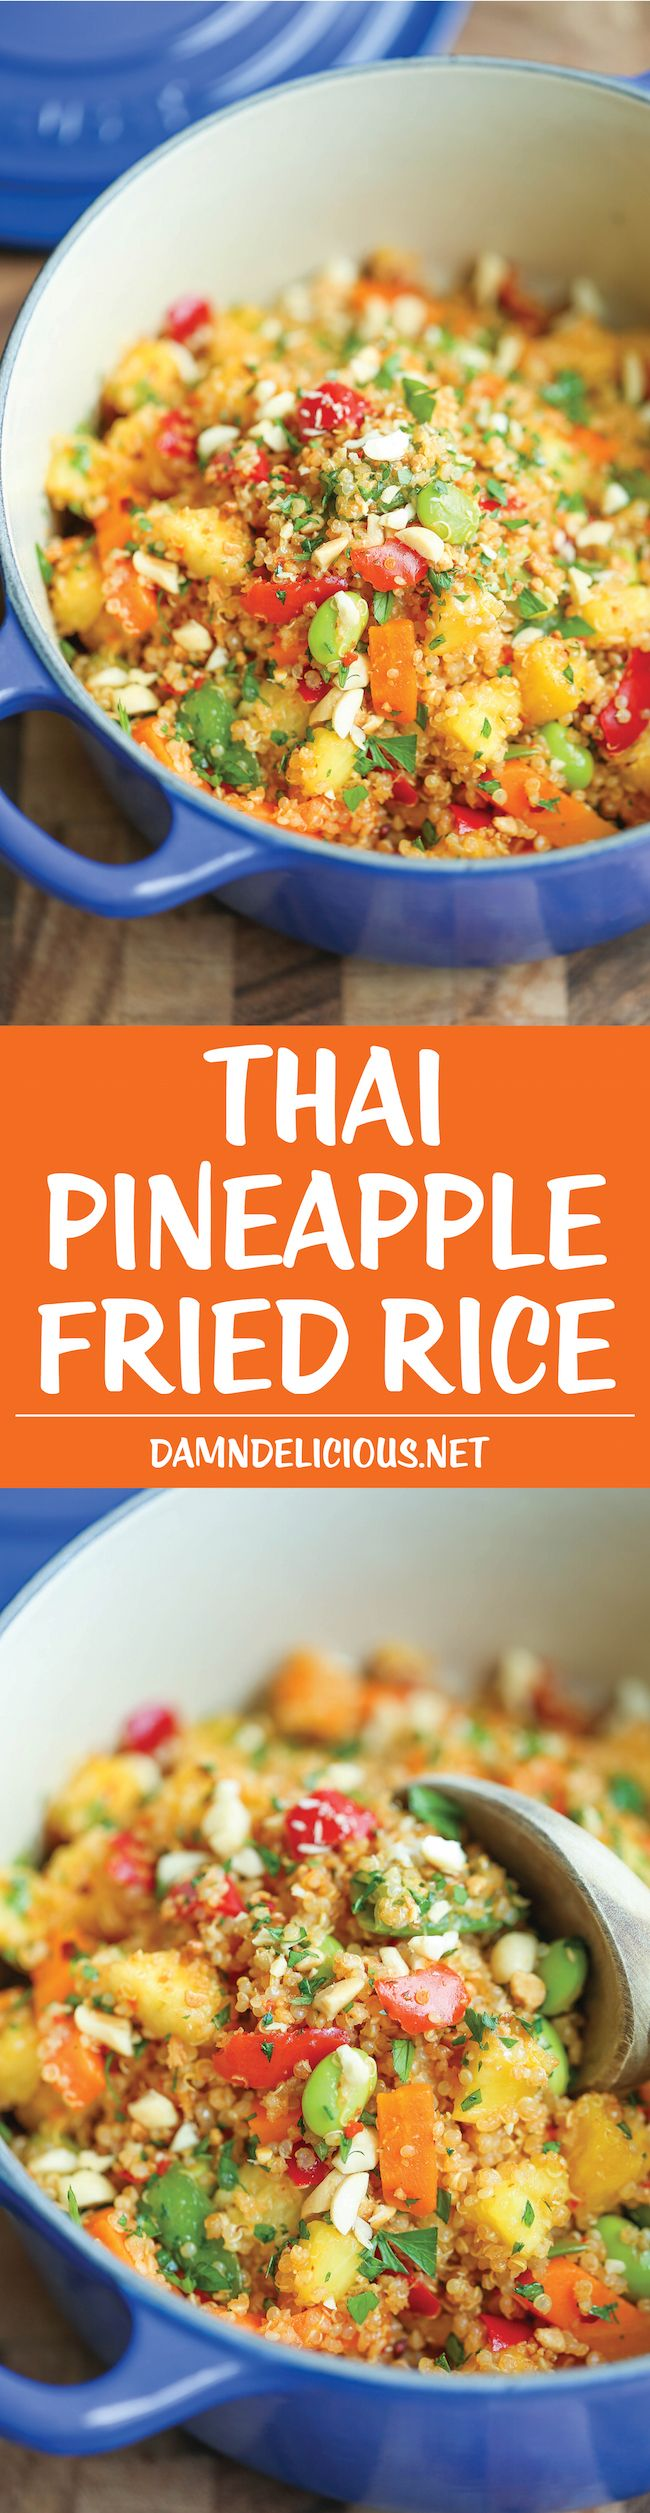 Thai Pineapple Fried Rice - Finally, a healthy, hearty fried rice made with quinoa! And it comes together in just 10 minutes - no dicing or chopping here!